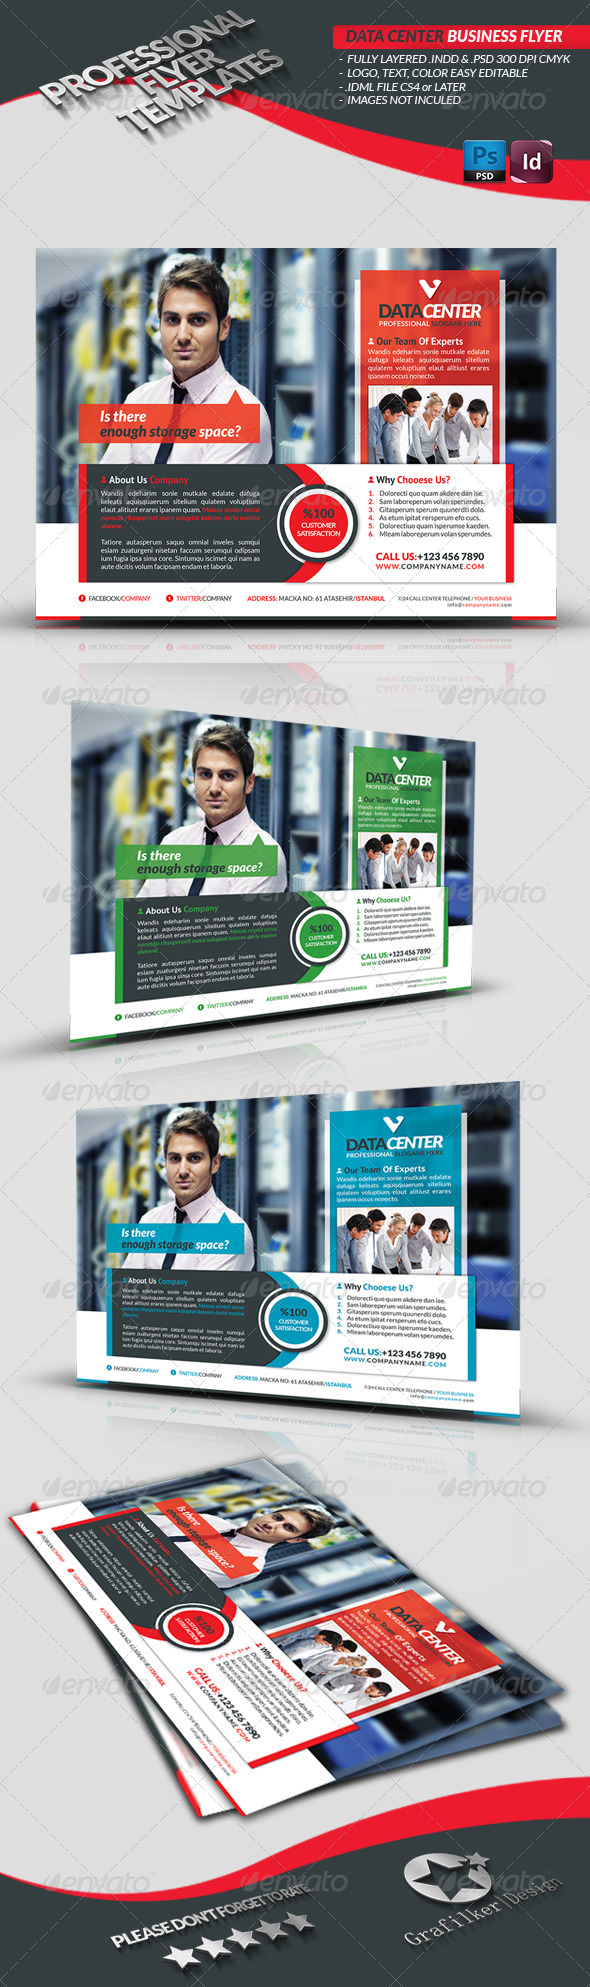 Data Center Business Flyer - Corporate Flyers